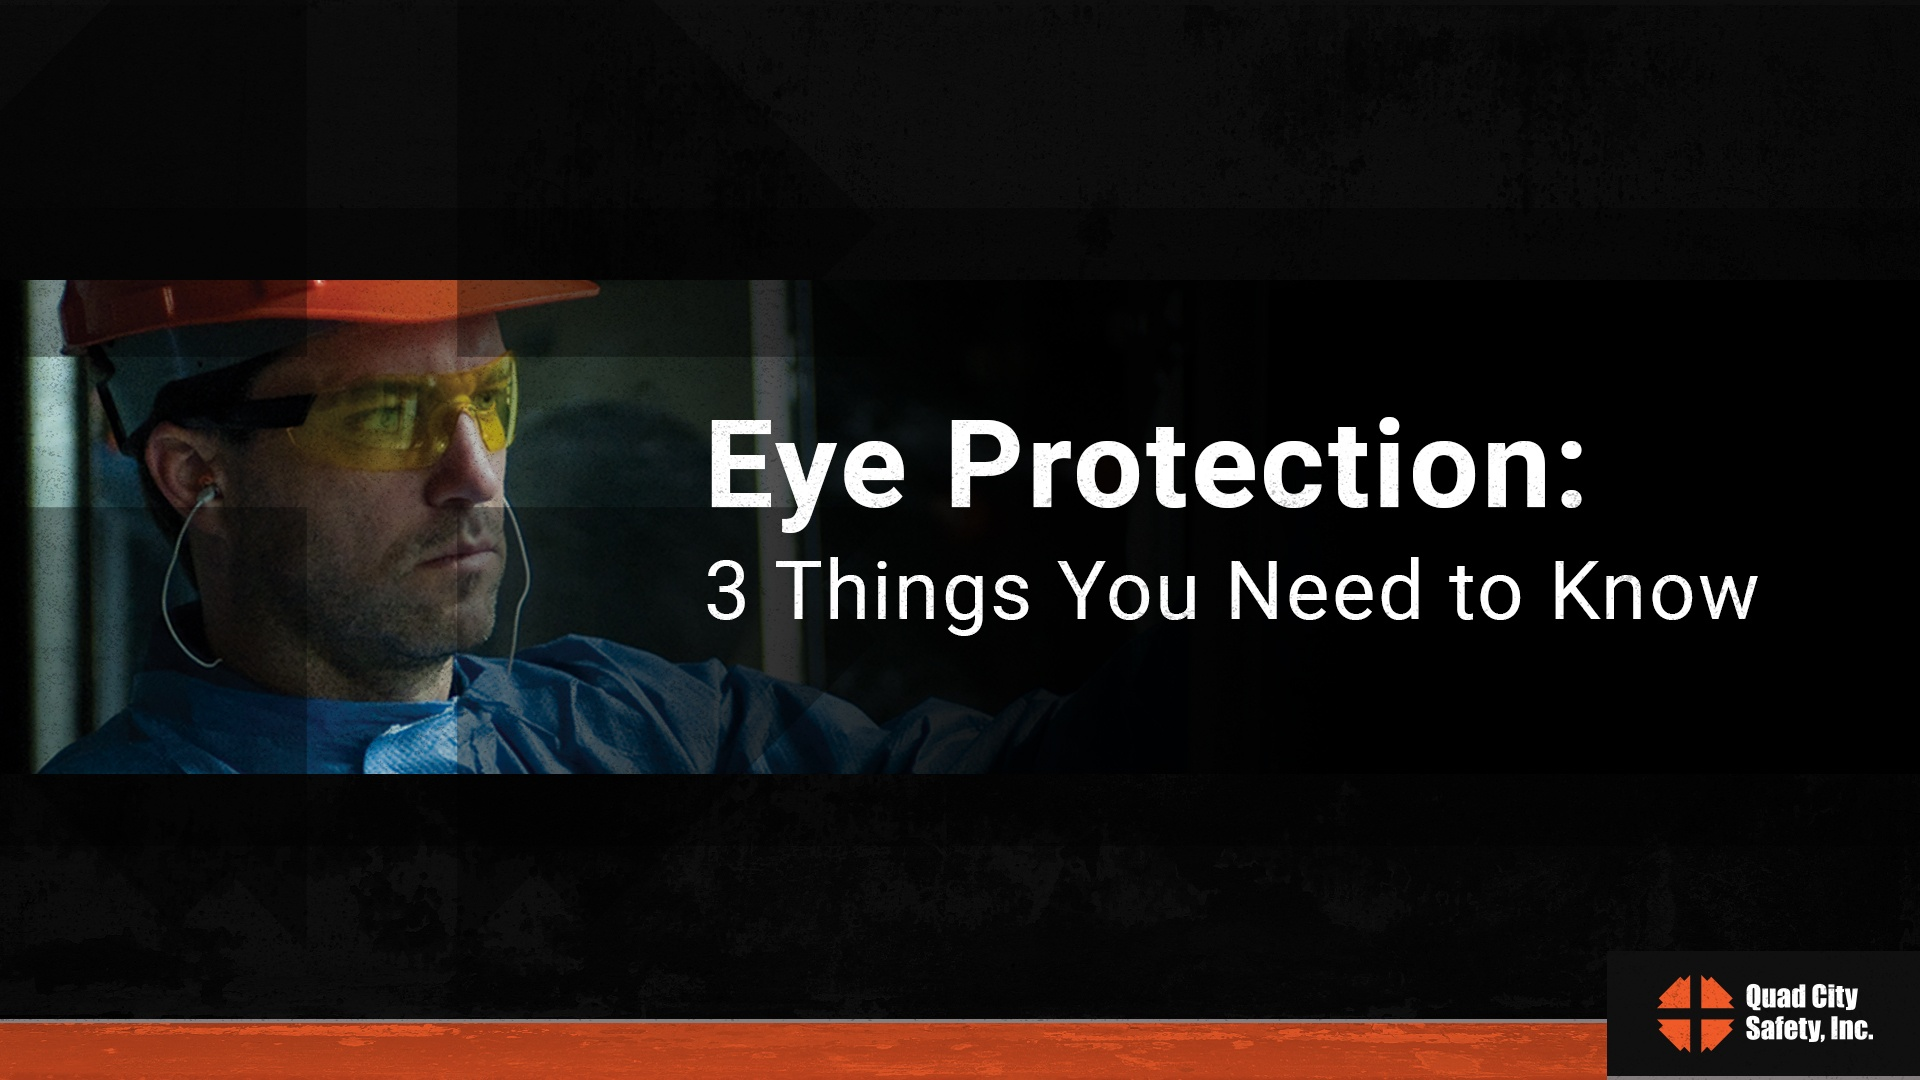 QCS C3 PCO - Eye Protection Title Slide Sample.jpg